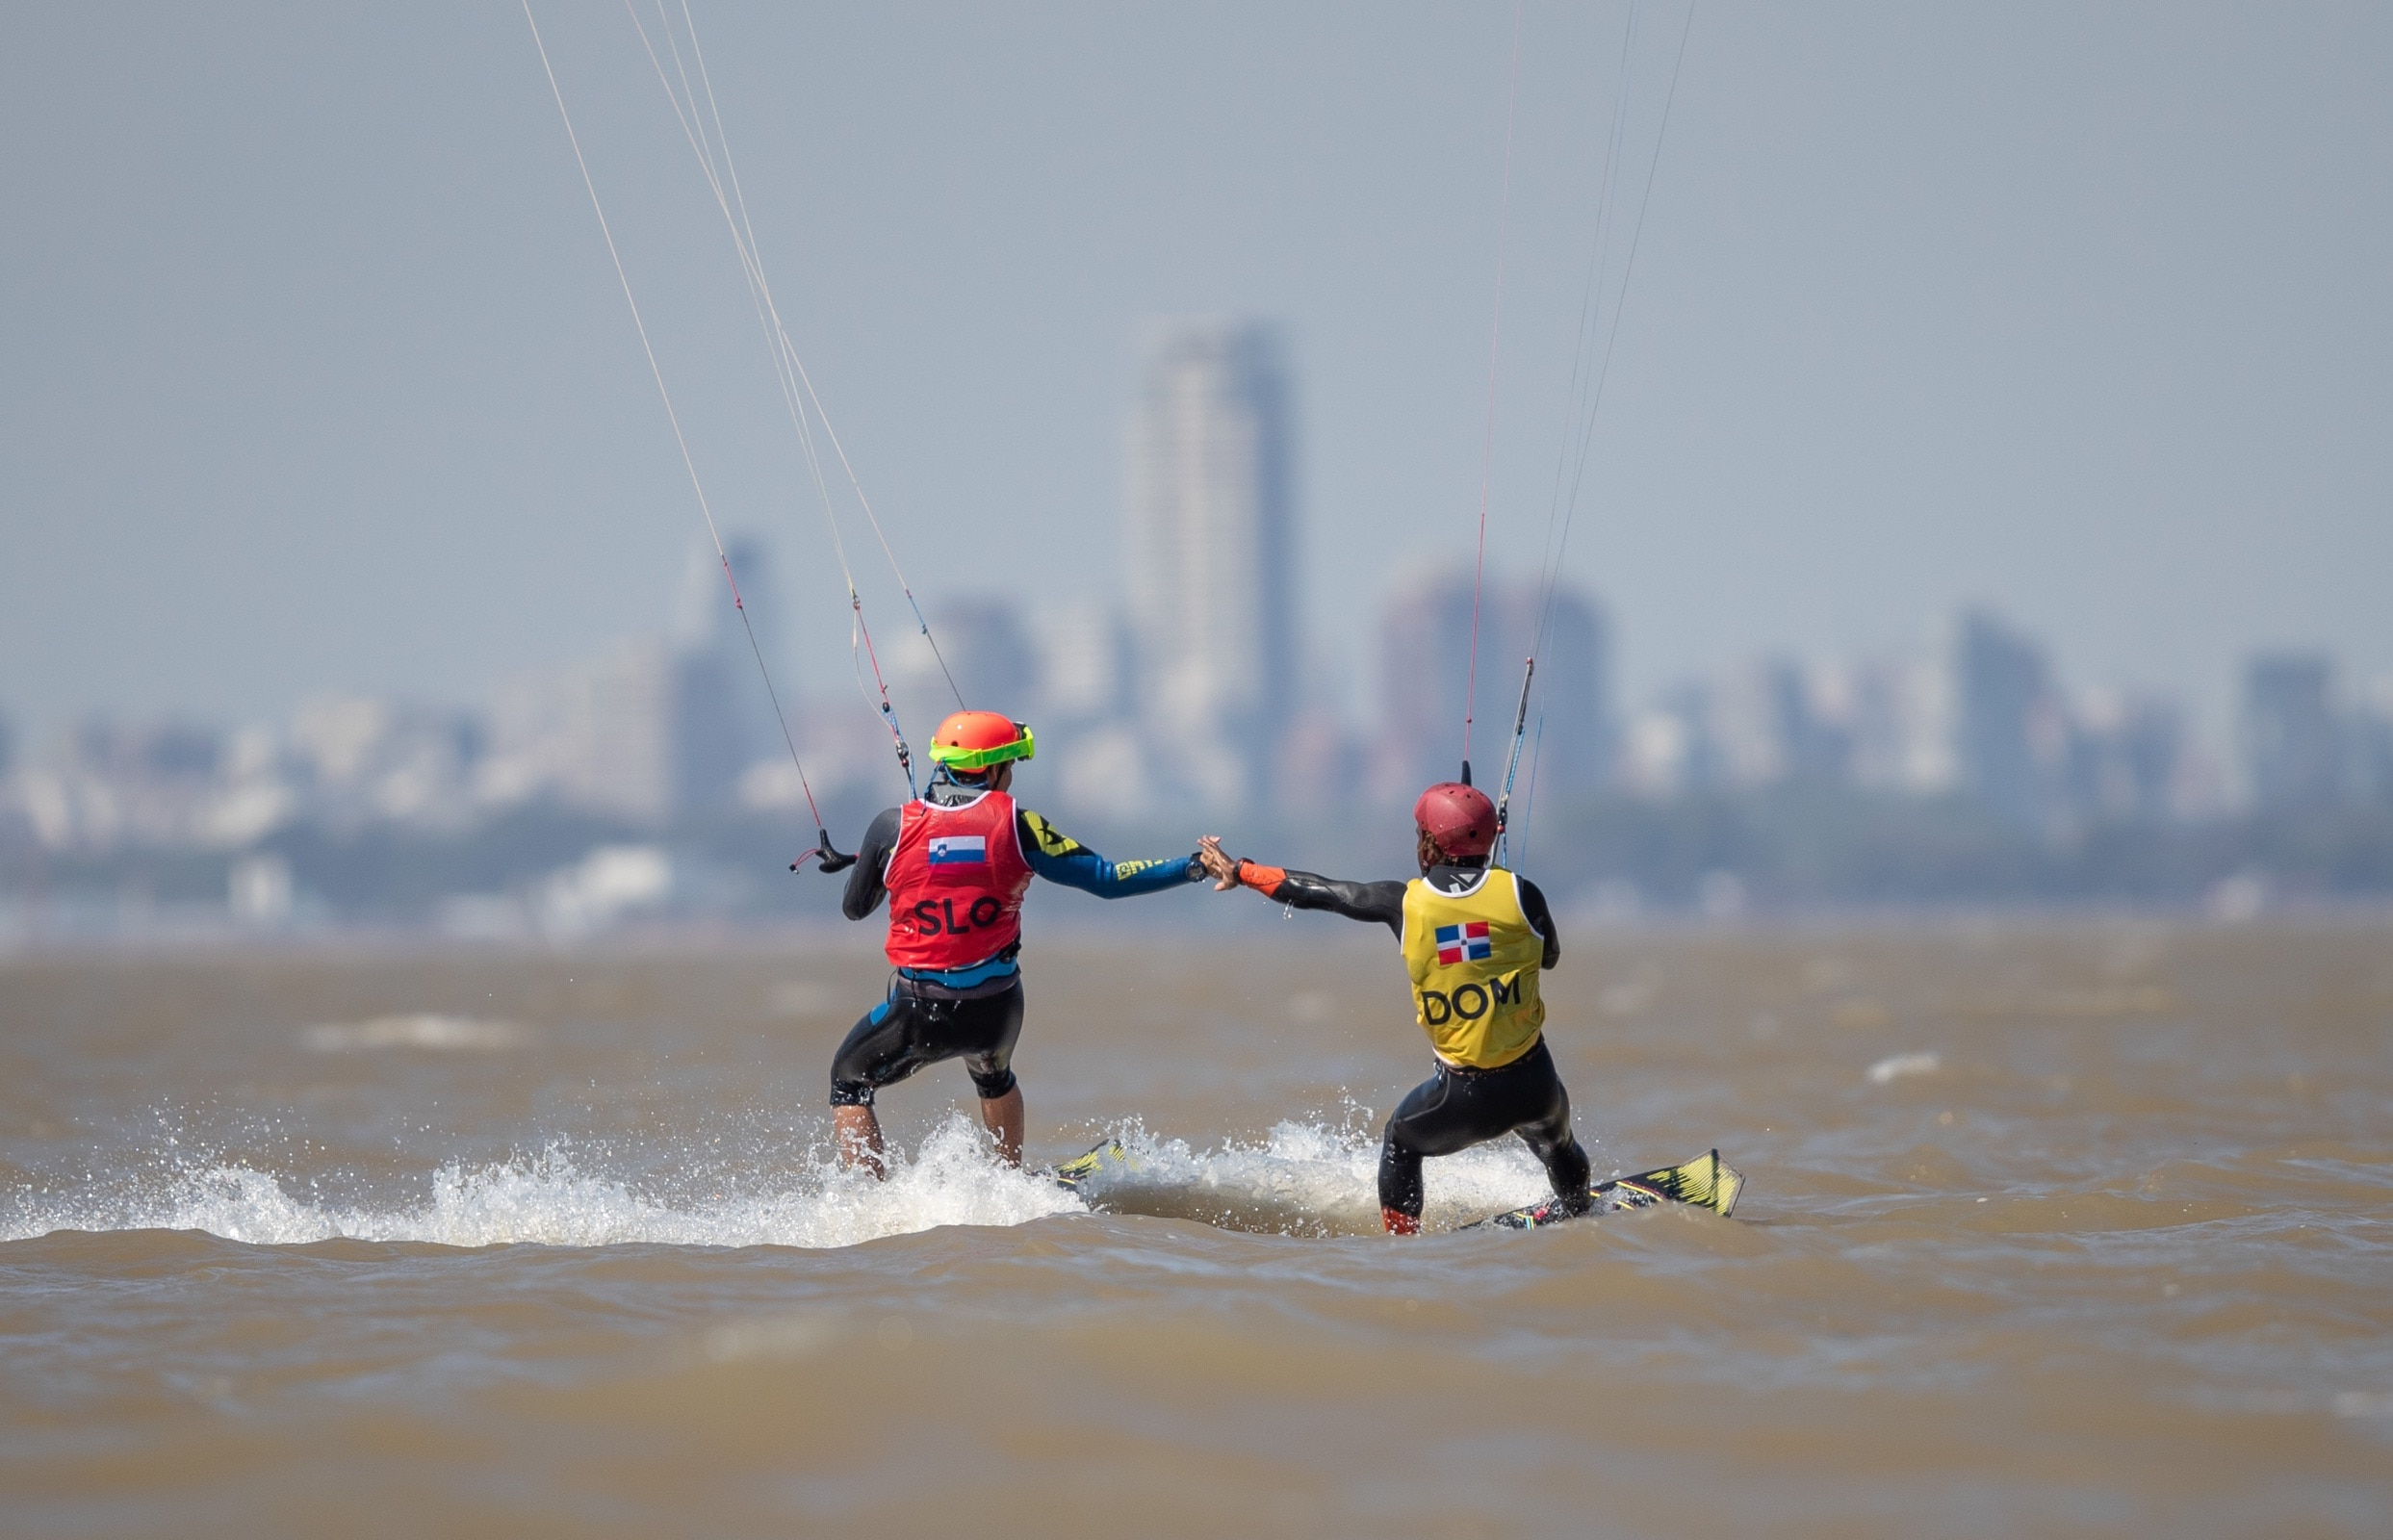 Buenos Aires 2018 - Voile - Kitesurf - IKA - hommes